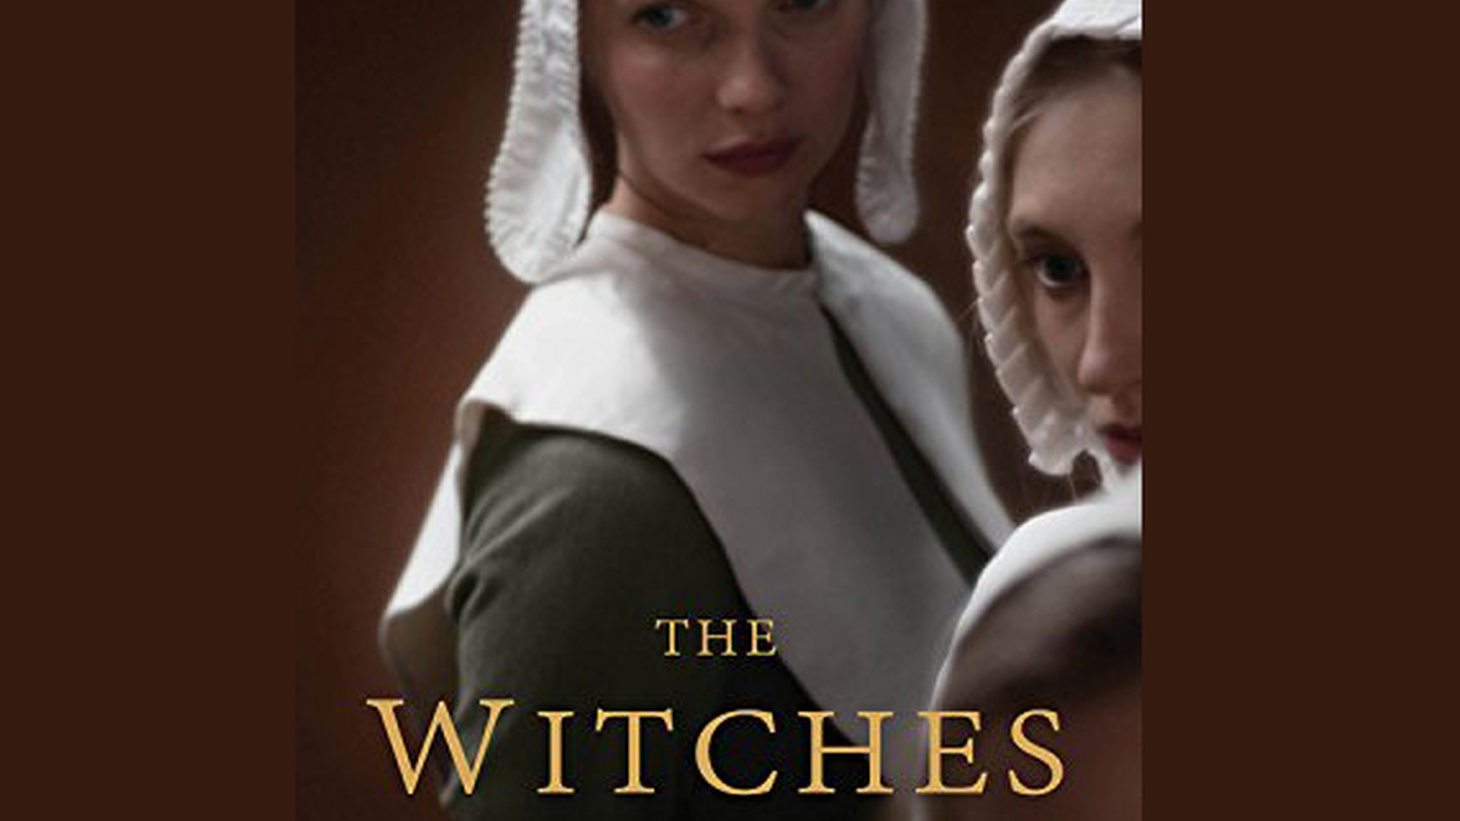 In 1692, the Massachusetts Bay Colony executed 14 women, five men, and two dogs for witchcraft. That's the first sentence of Stacy Schiff's new book,  The Witches: Salem, 1692 . Who were the women and men accused of witchcraft? Who were the people who sentenced them to death?